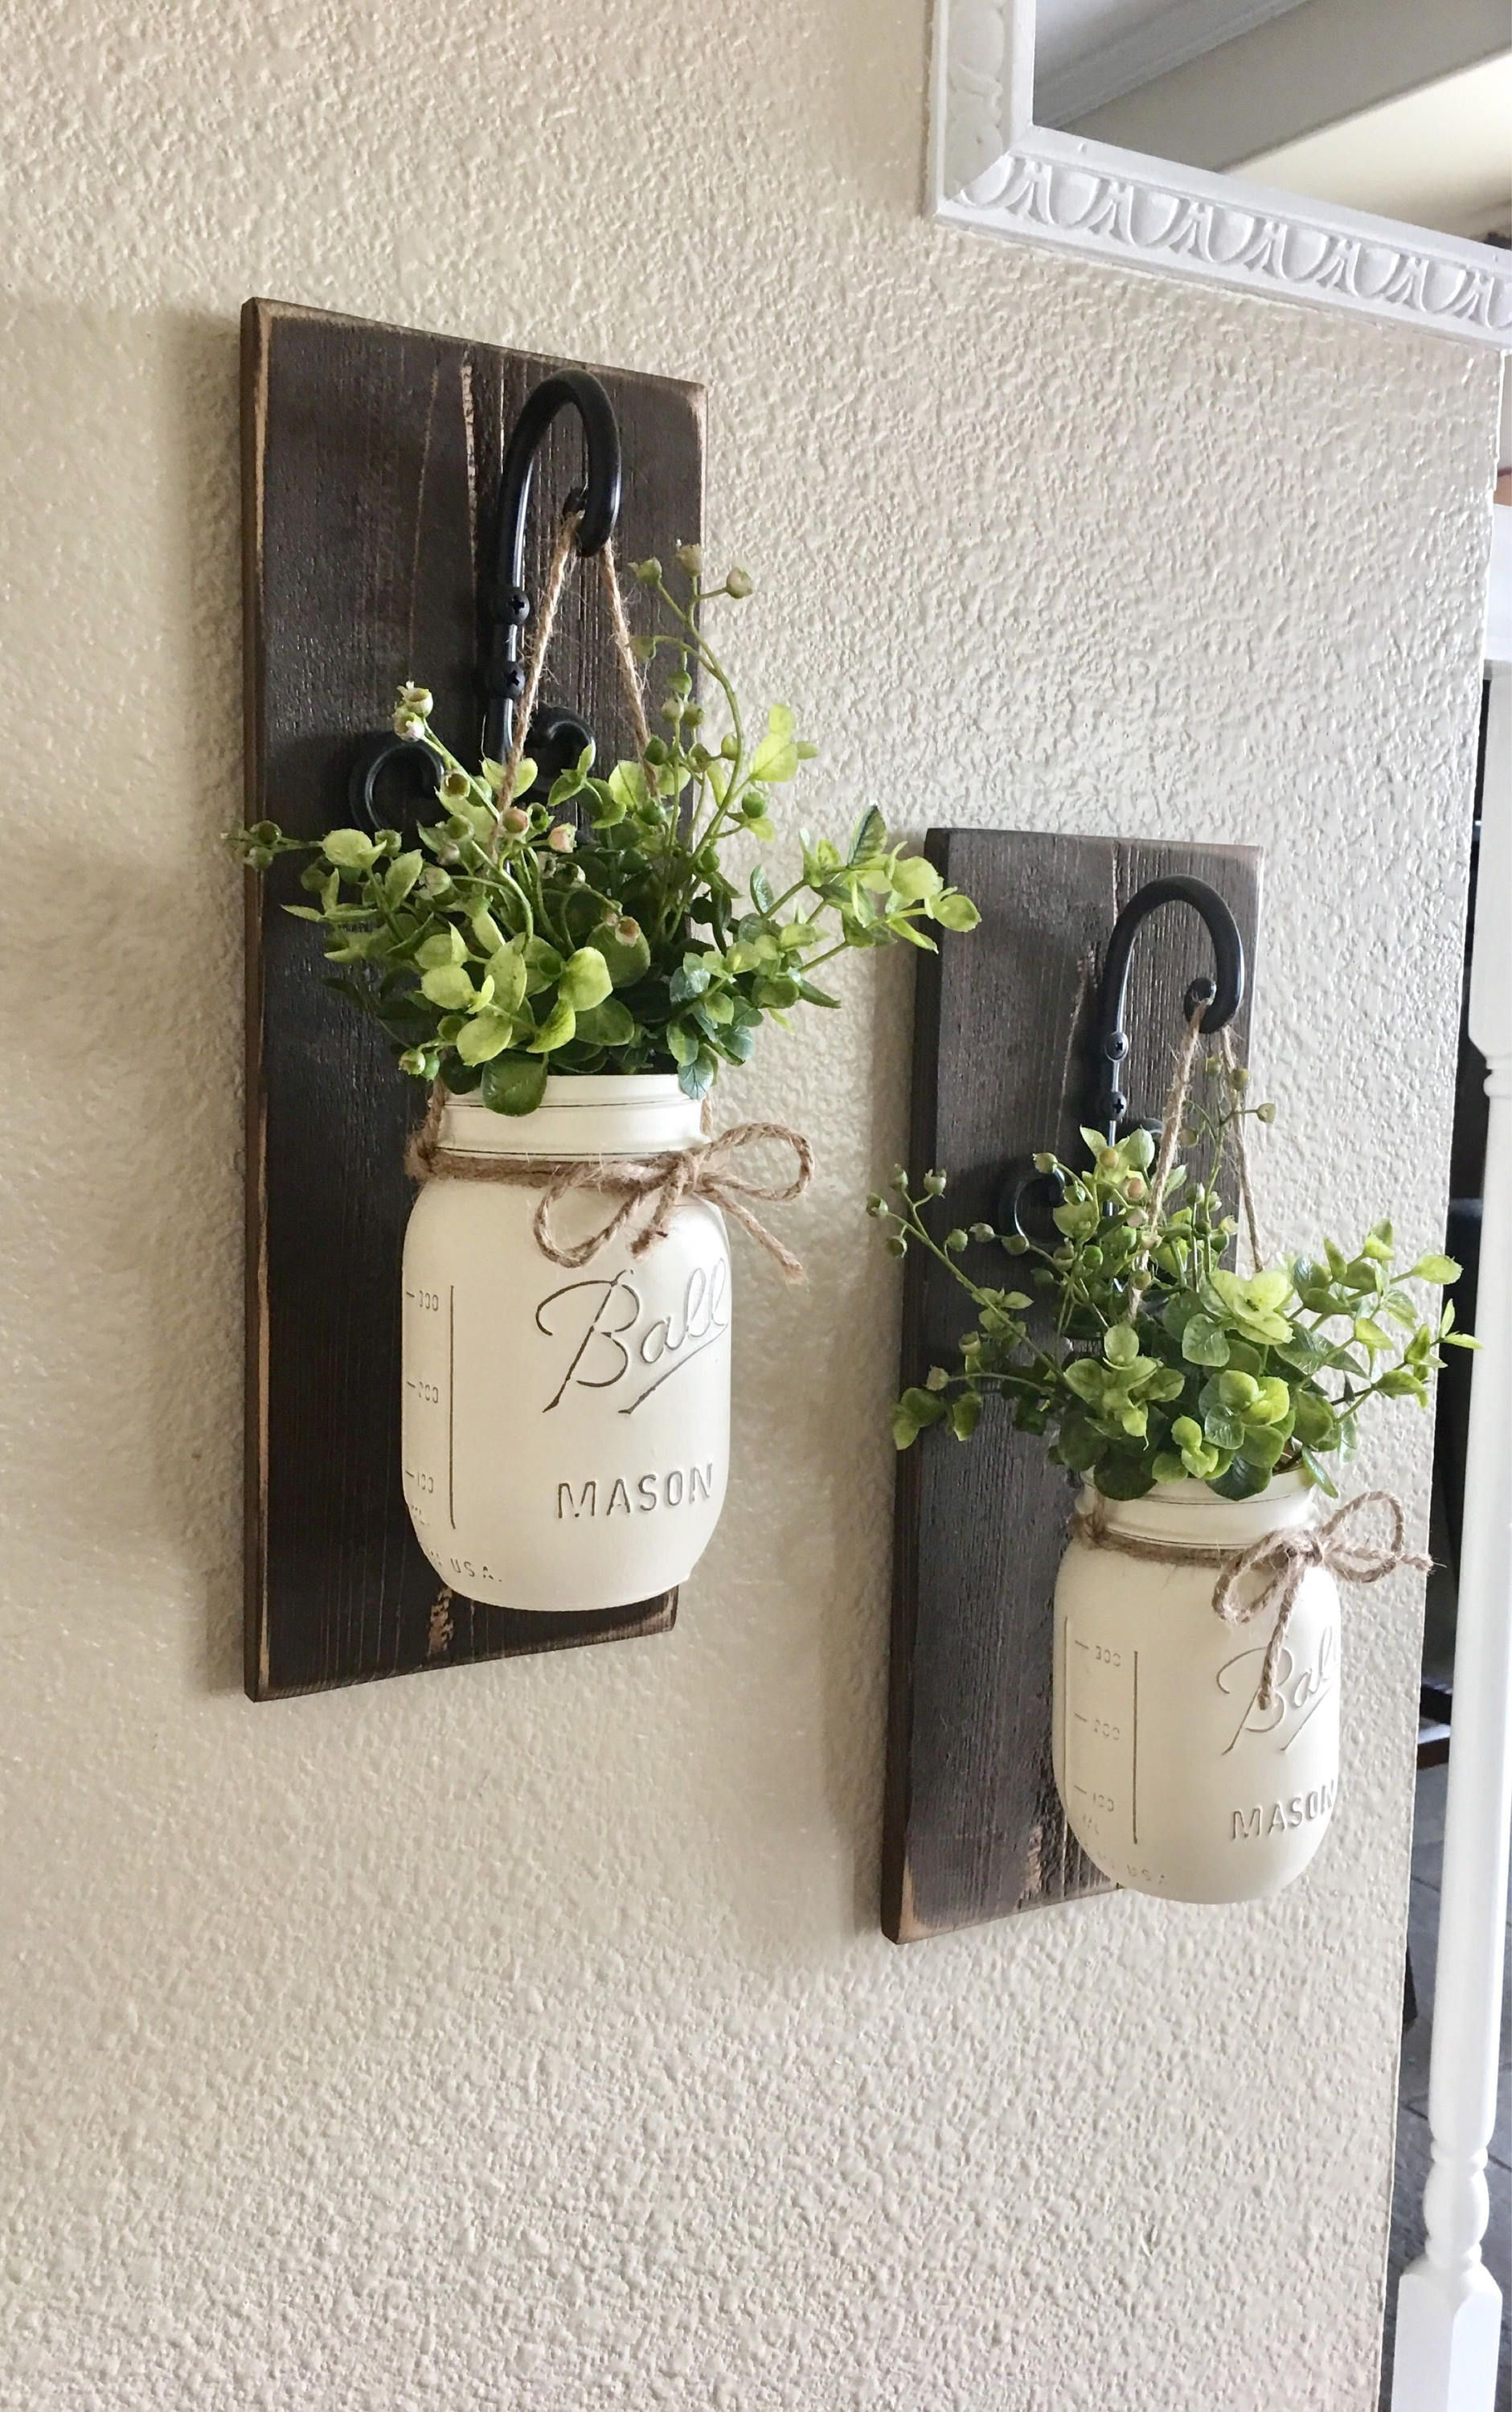 31 Kitchen Wall Decor Ideas That Inspire Decorated Jars Hanging